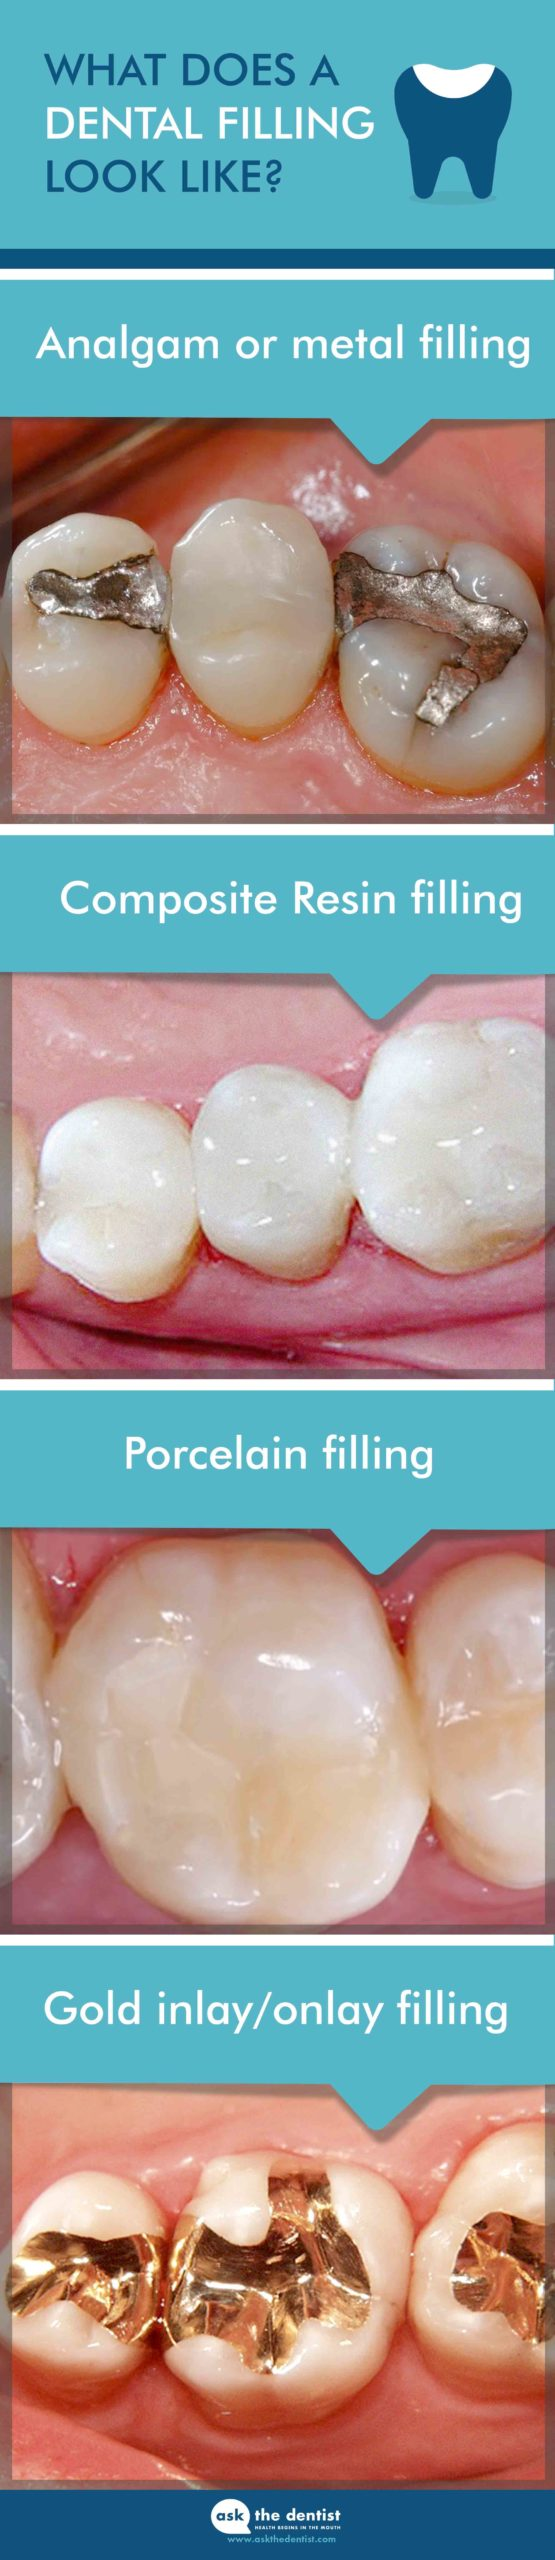 Pain After Filling Of The Upper Teeth?